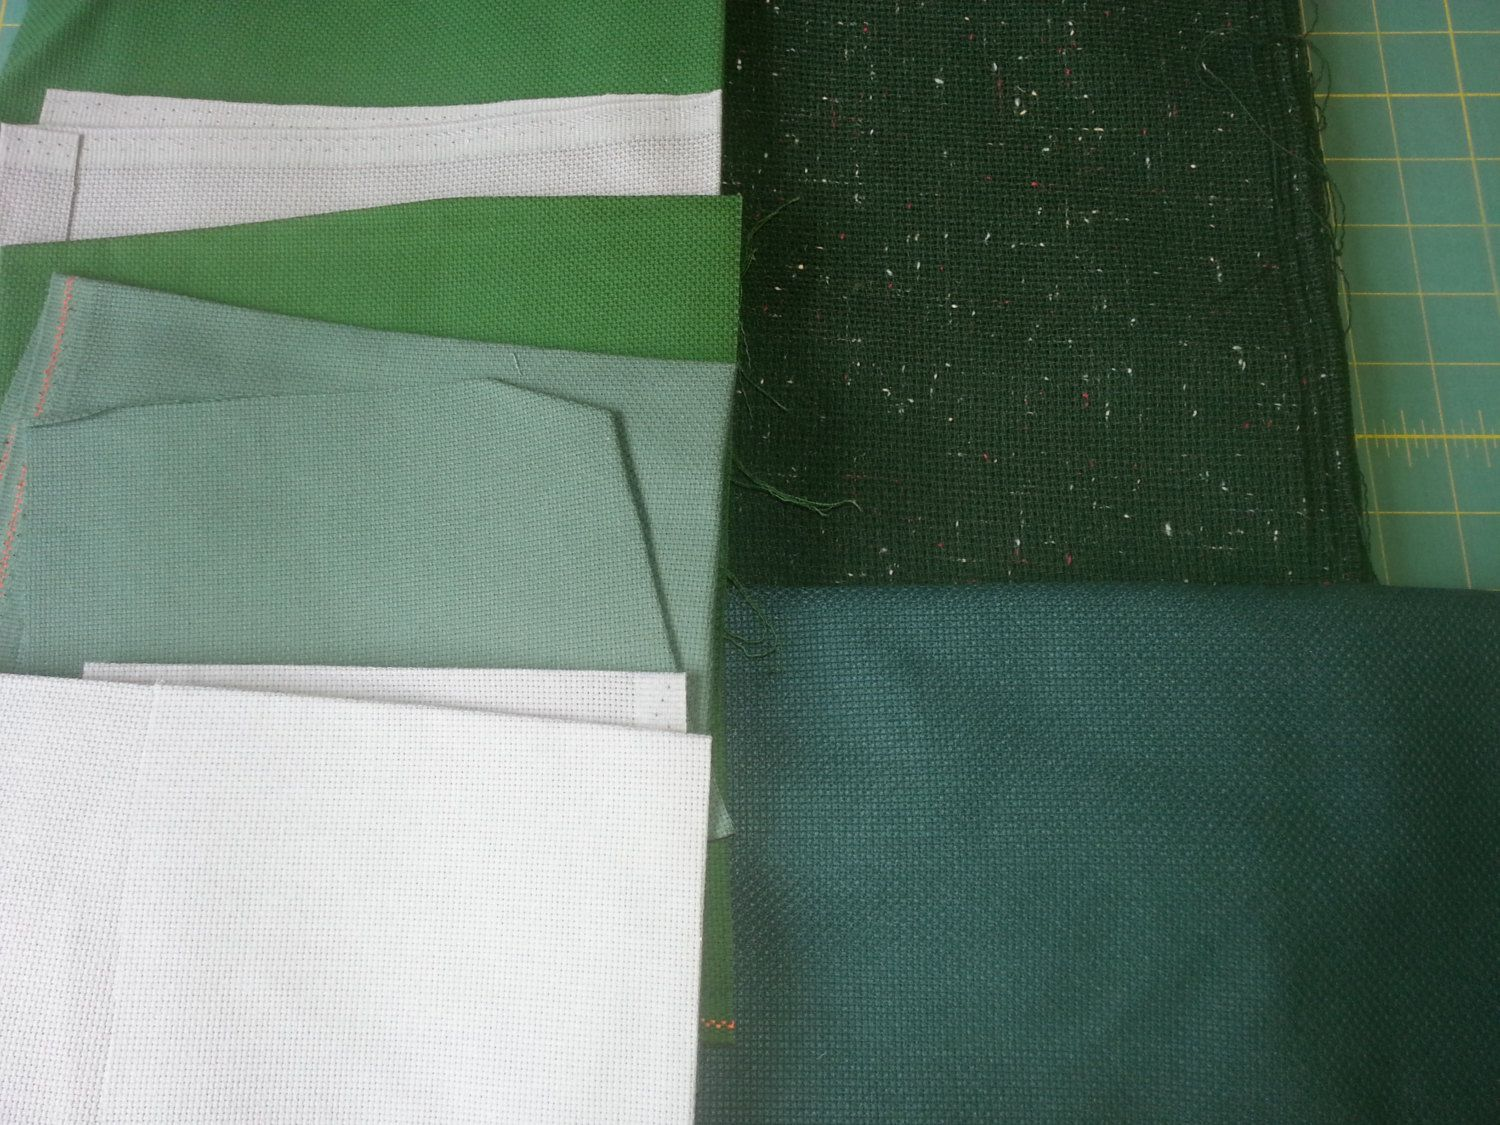 Cross Stitch Fabric / Mixed Lot / Green & Grey Color Families ...